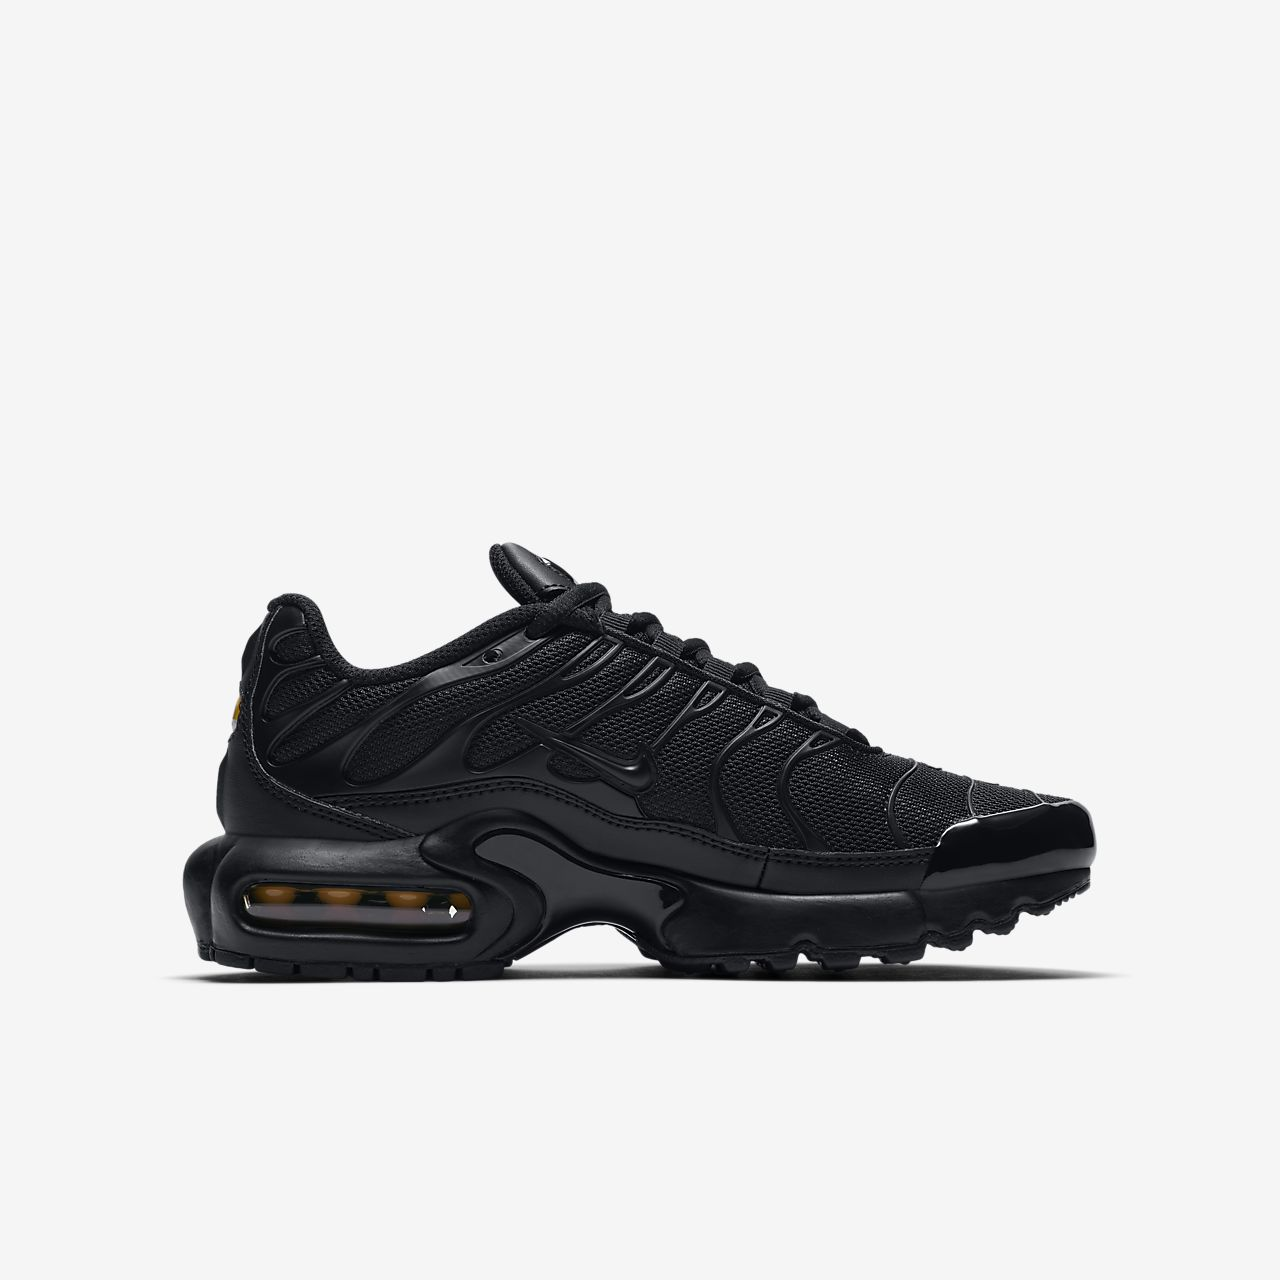 nike air max plus bambino 36.5